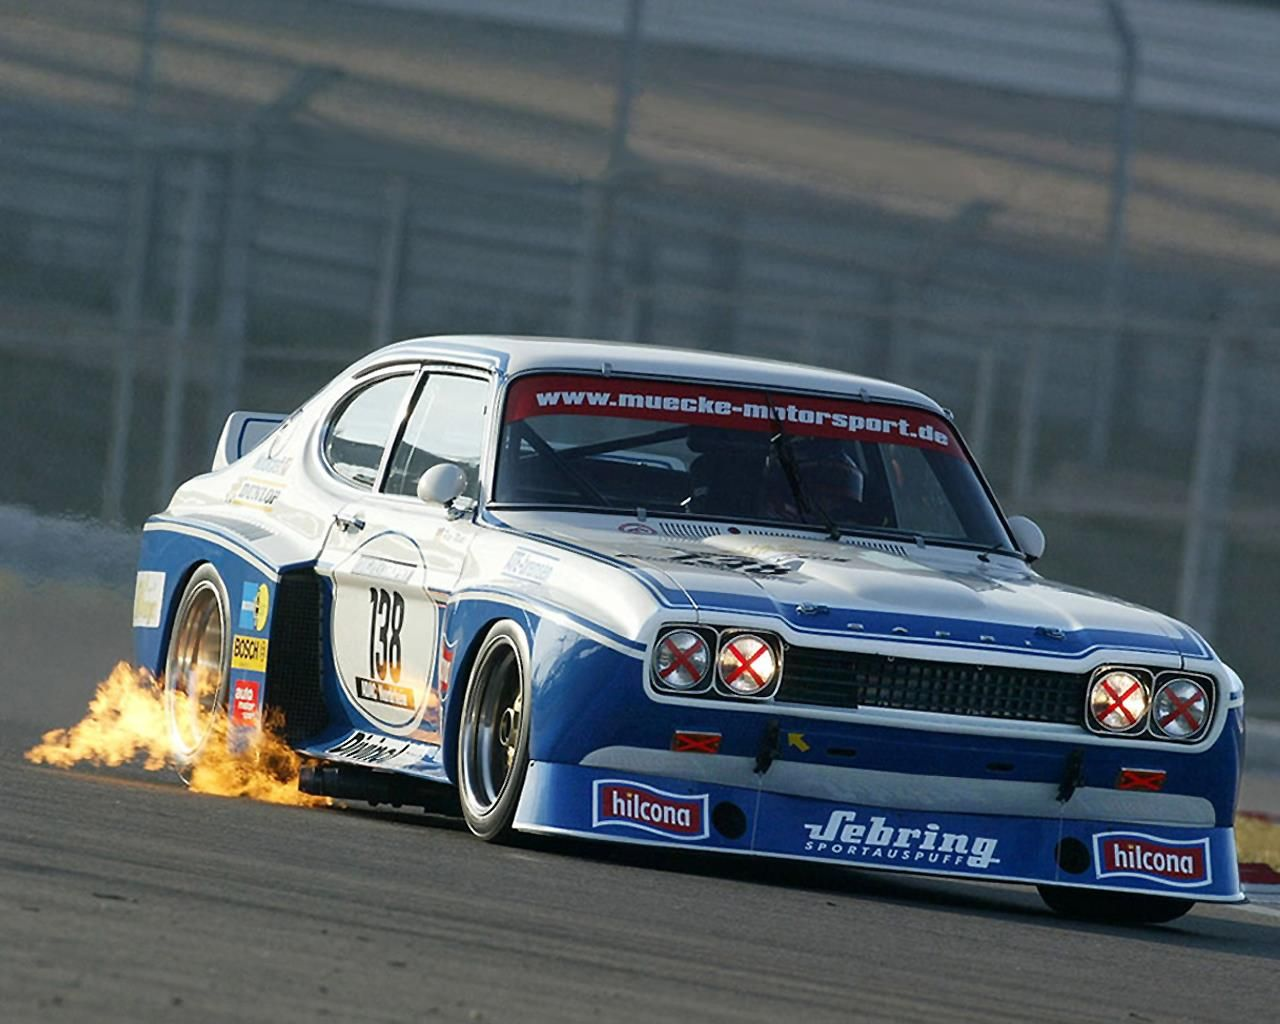 Ford Capri RS 2600 V6 Cosworth : ford capri cars - markmcfarlin.com